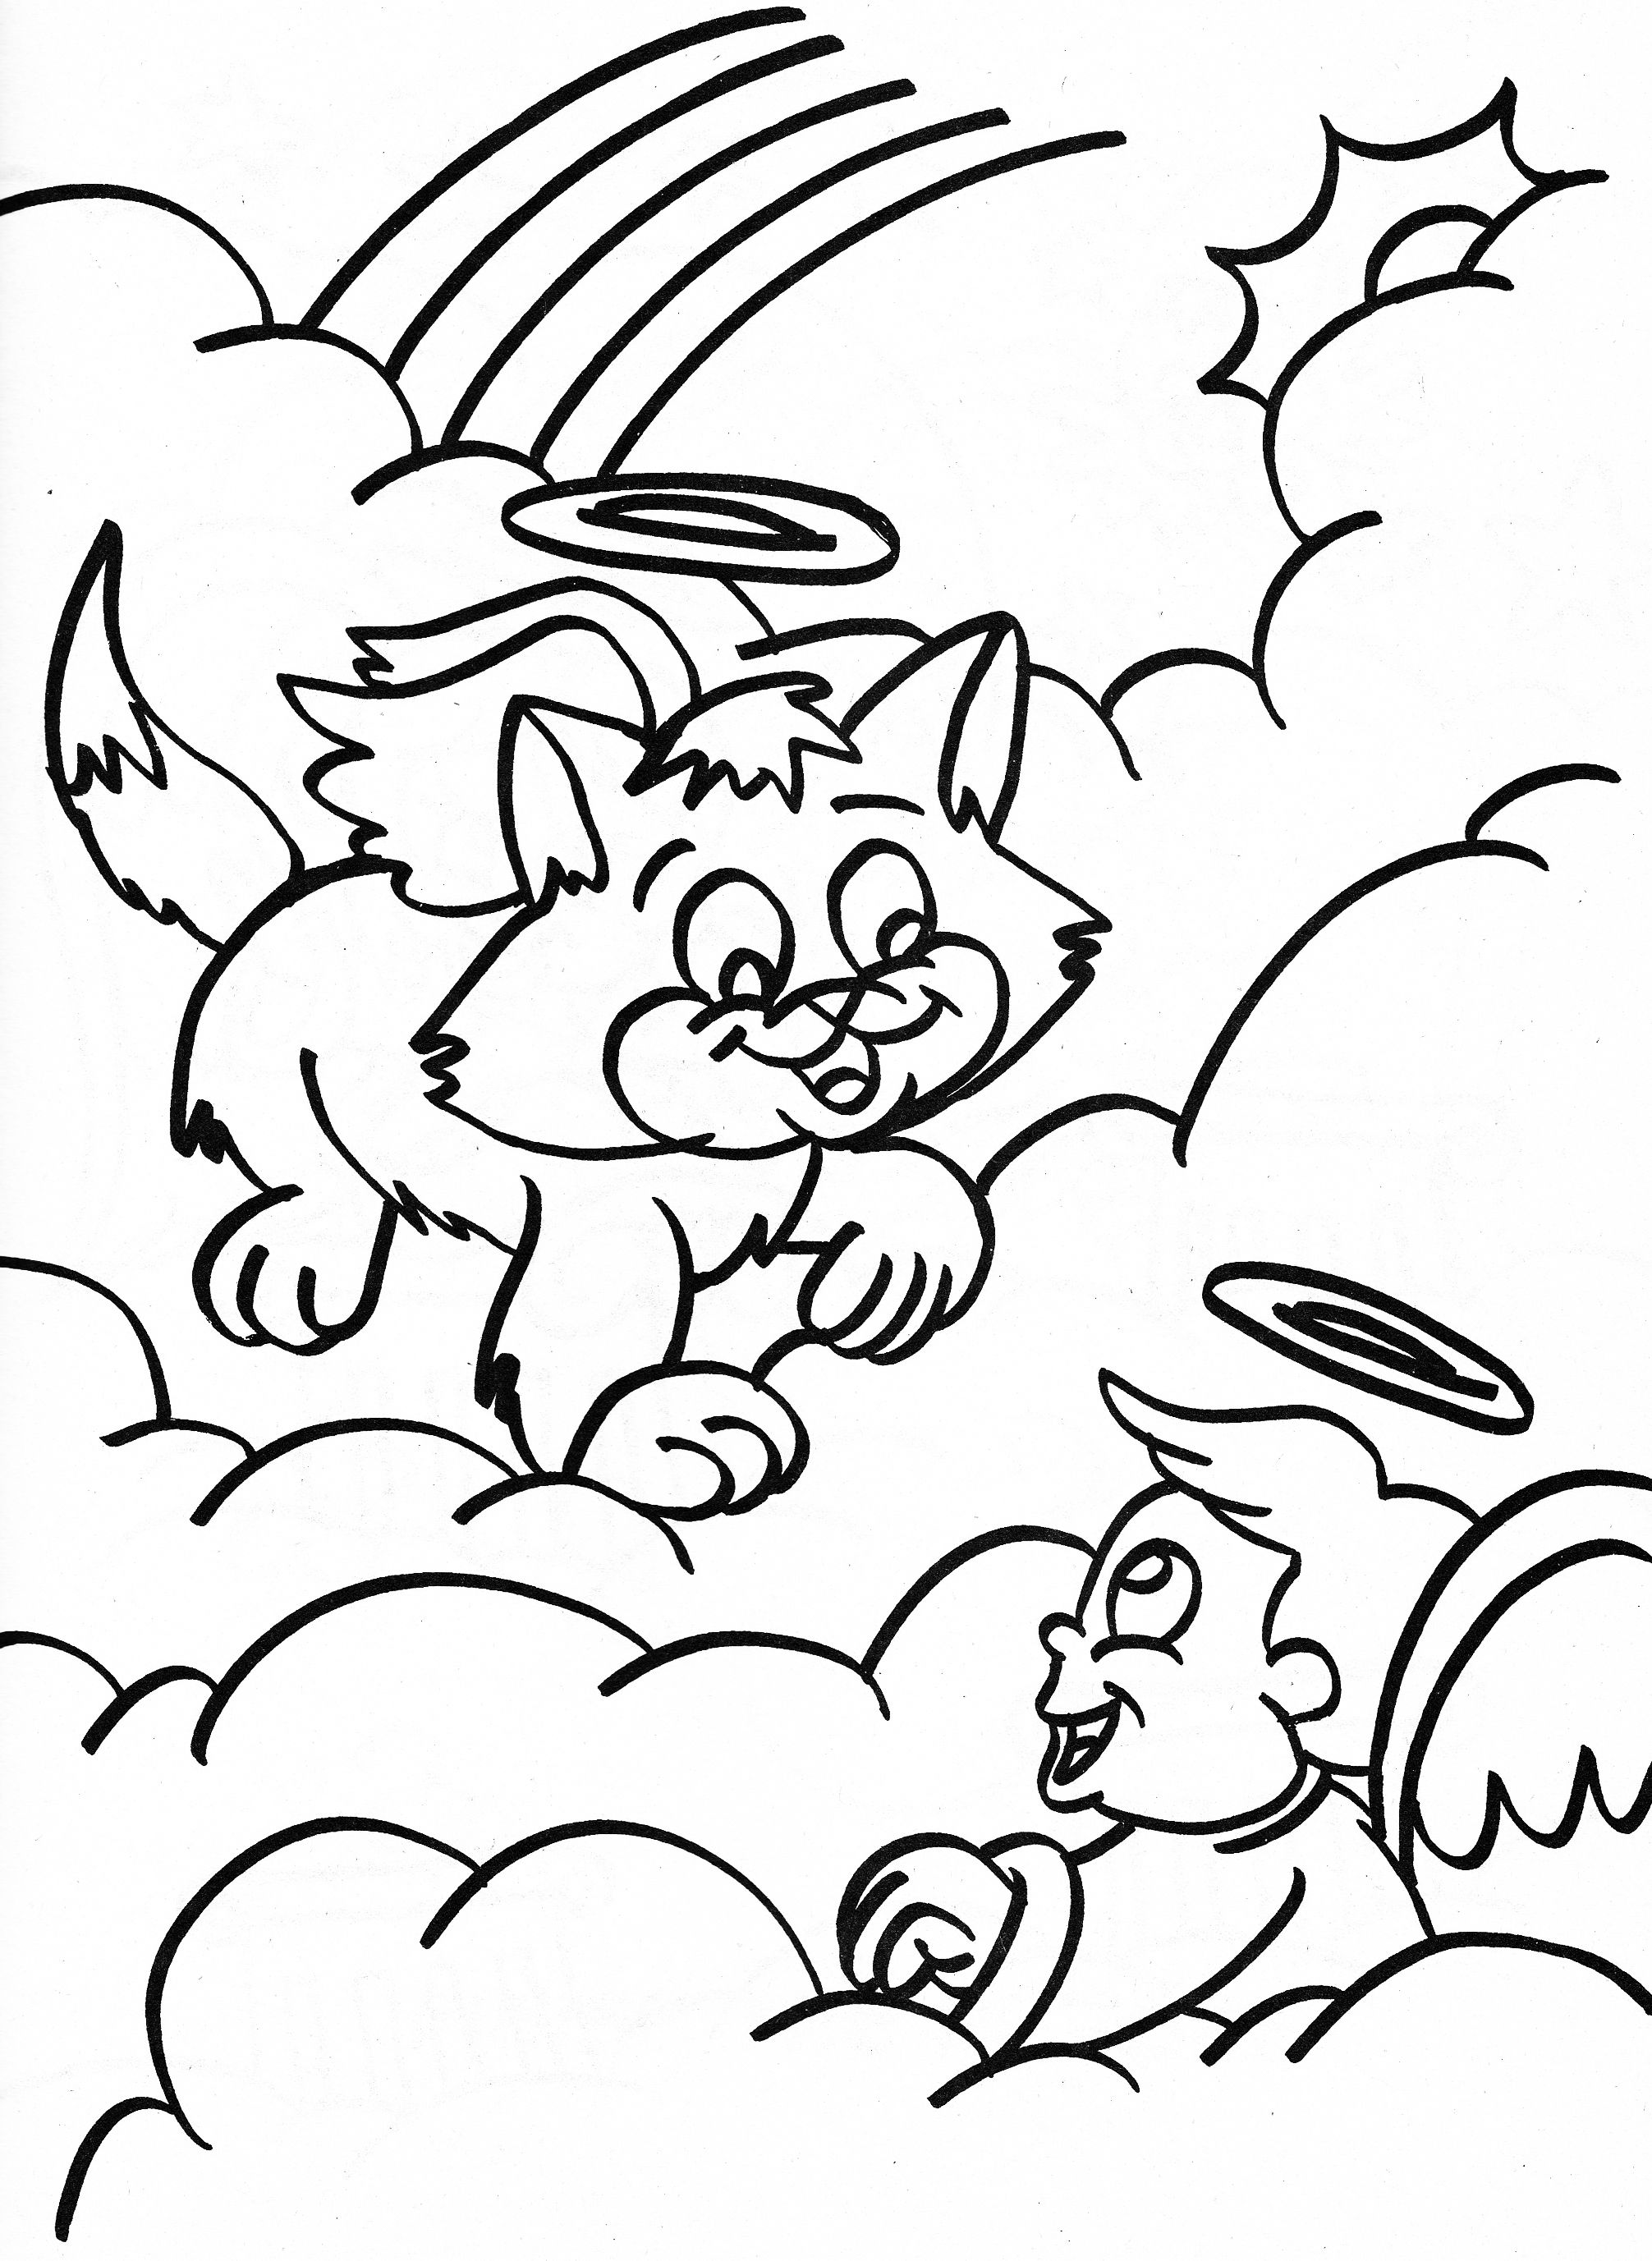 angel coloring page cat angel and boy angel in the clouds - Angel Coloring Page